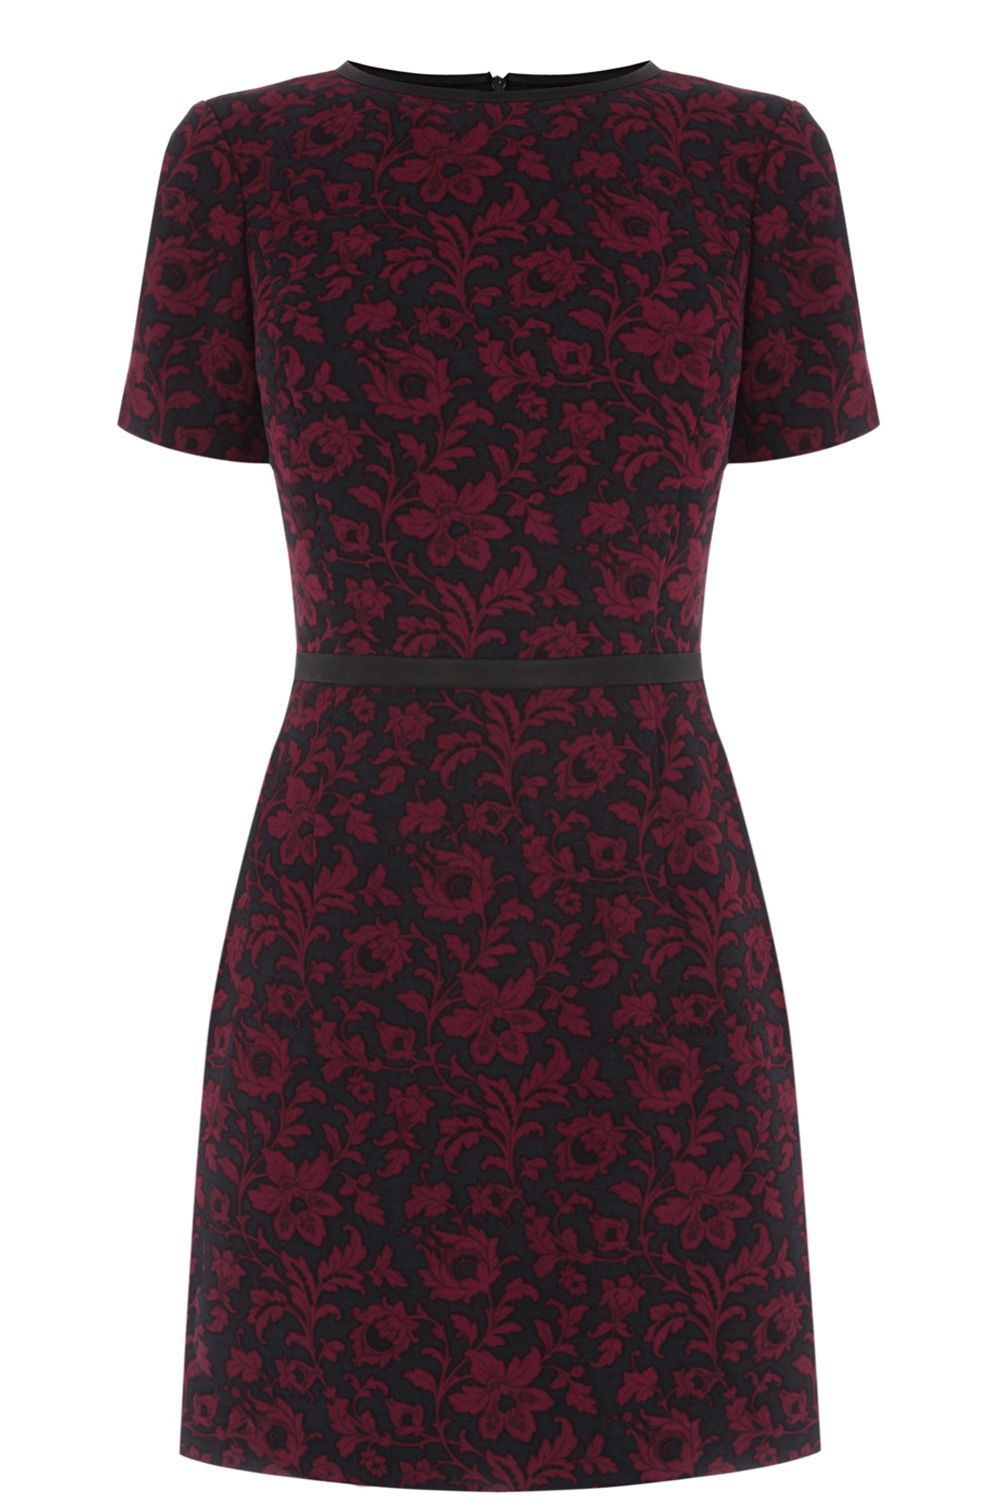 oasis baroque floral dress lyst